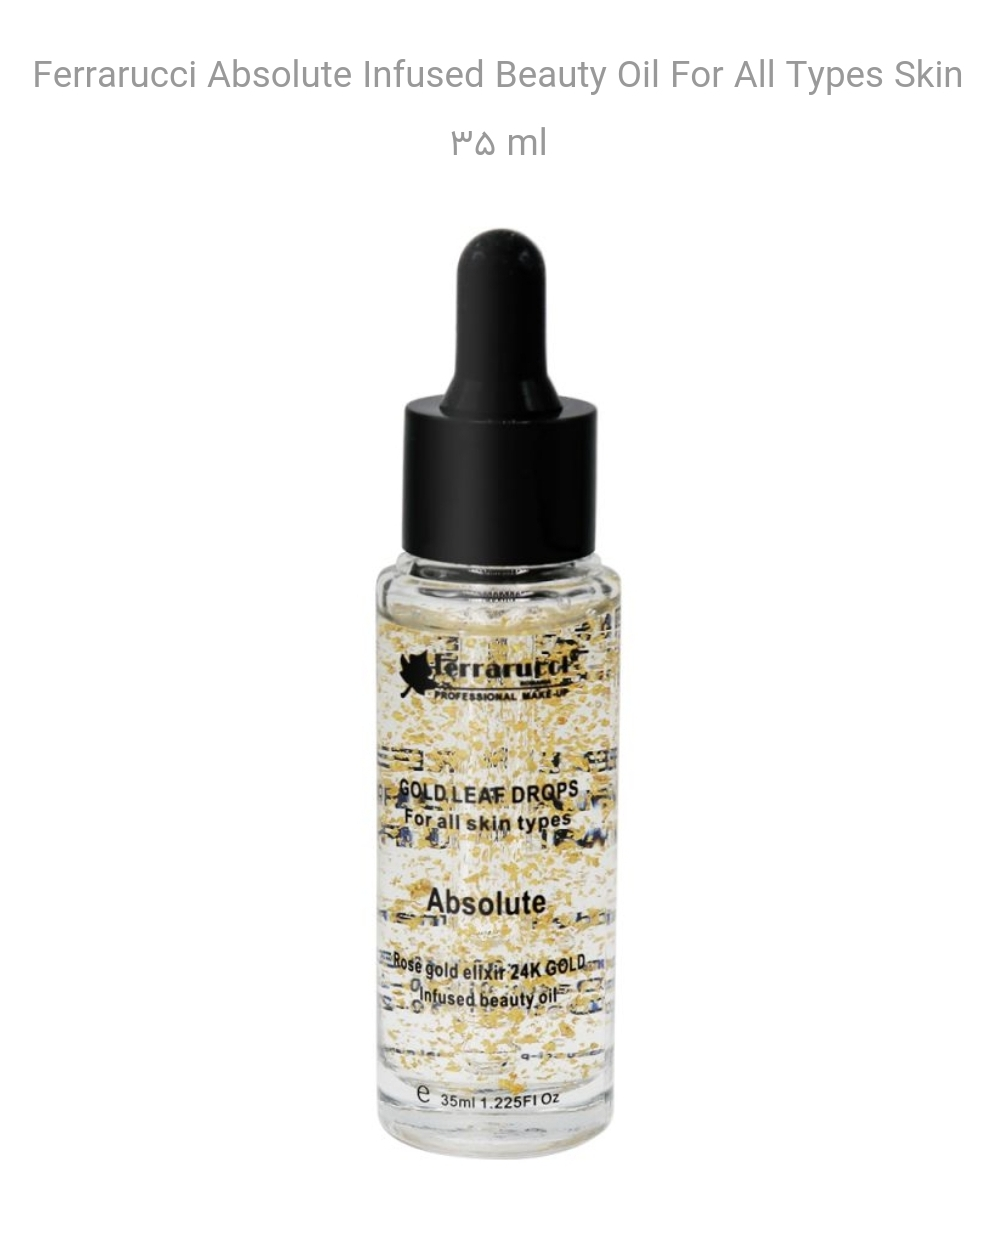 Absolute Infused Beauty OLD For All Types Skin 35 ml فراروسی